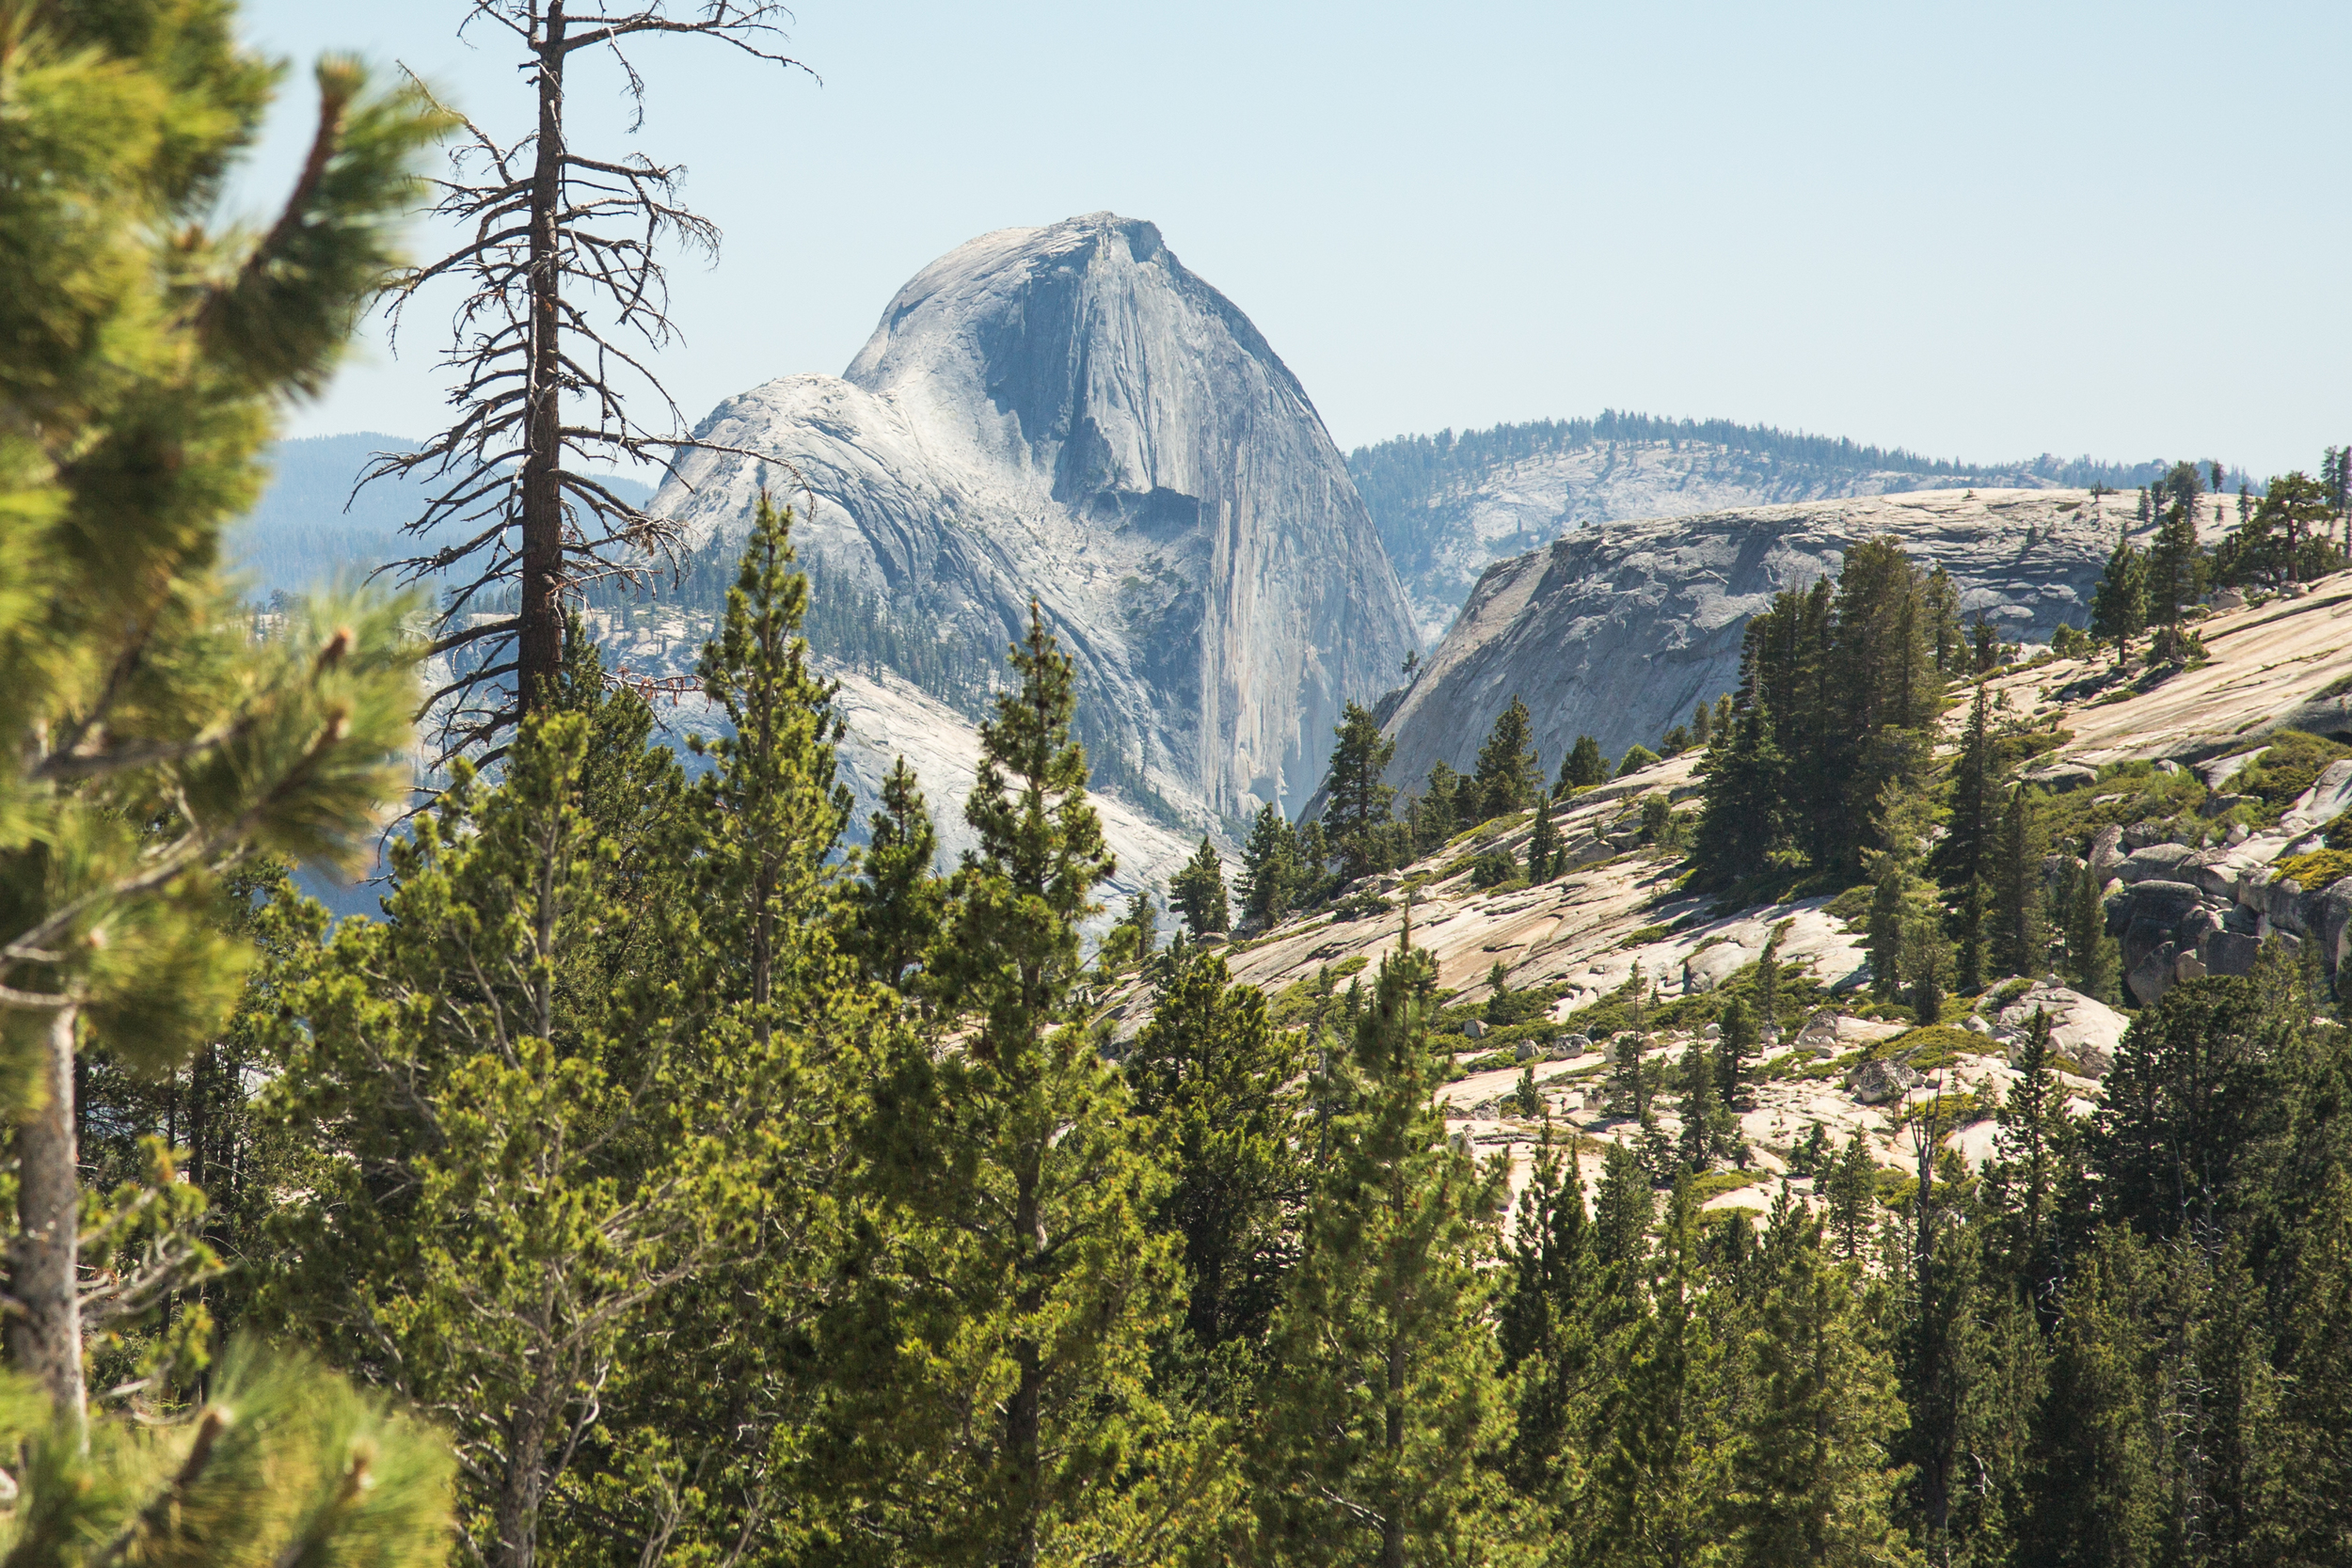 Half Dome peeking up from Yosemite Valley